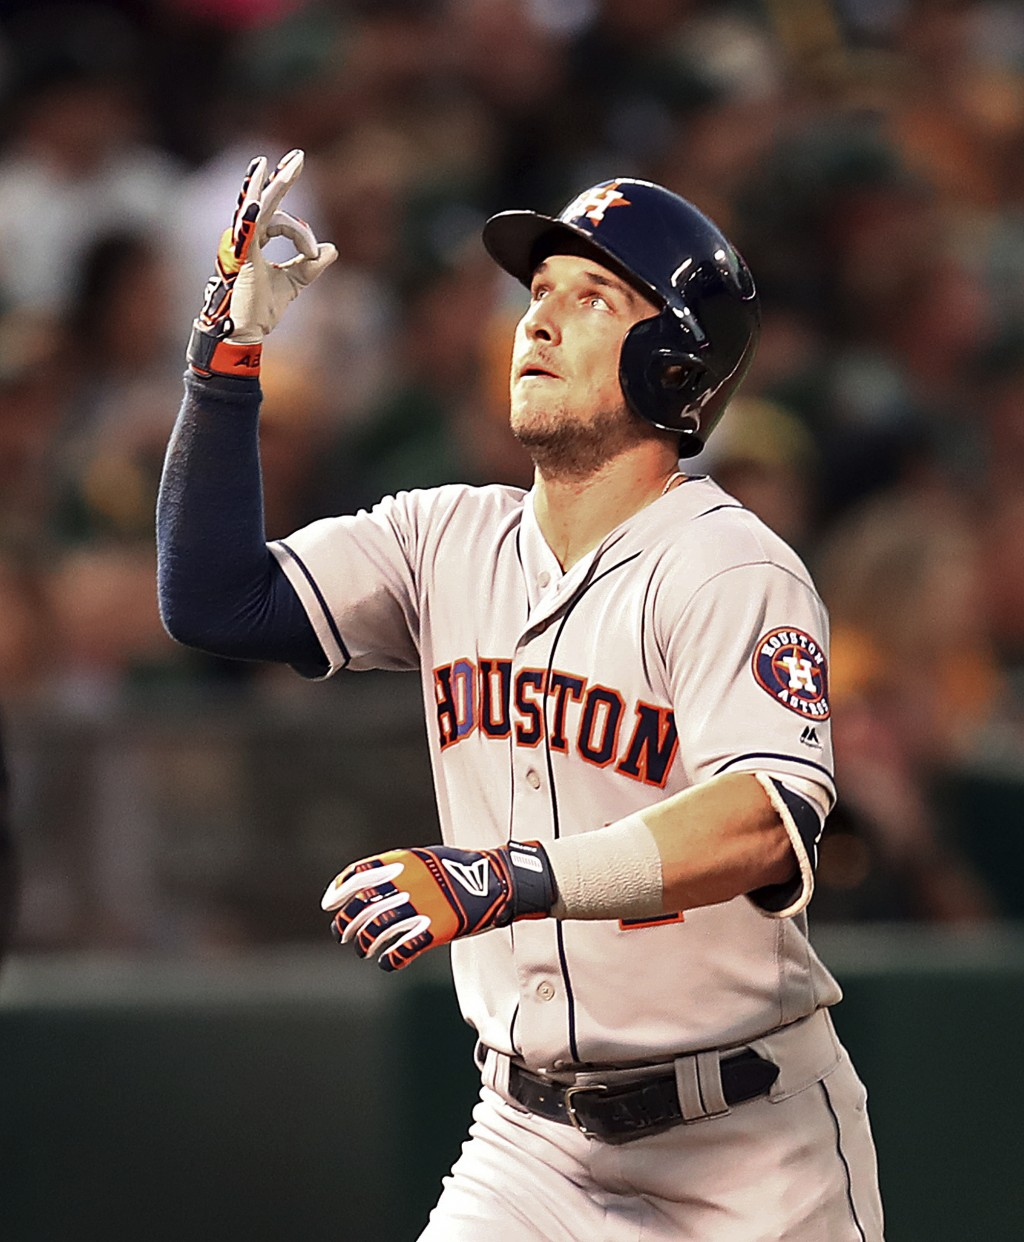 Houston Astros' Alex Bregman celebrates after hitting a home run off Oakland Athletics' Edwin Jackson in the fourth inning of a baseball game Friday, ...